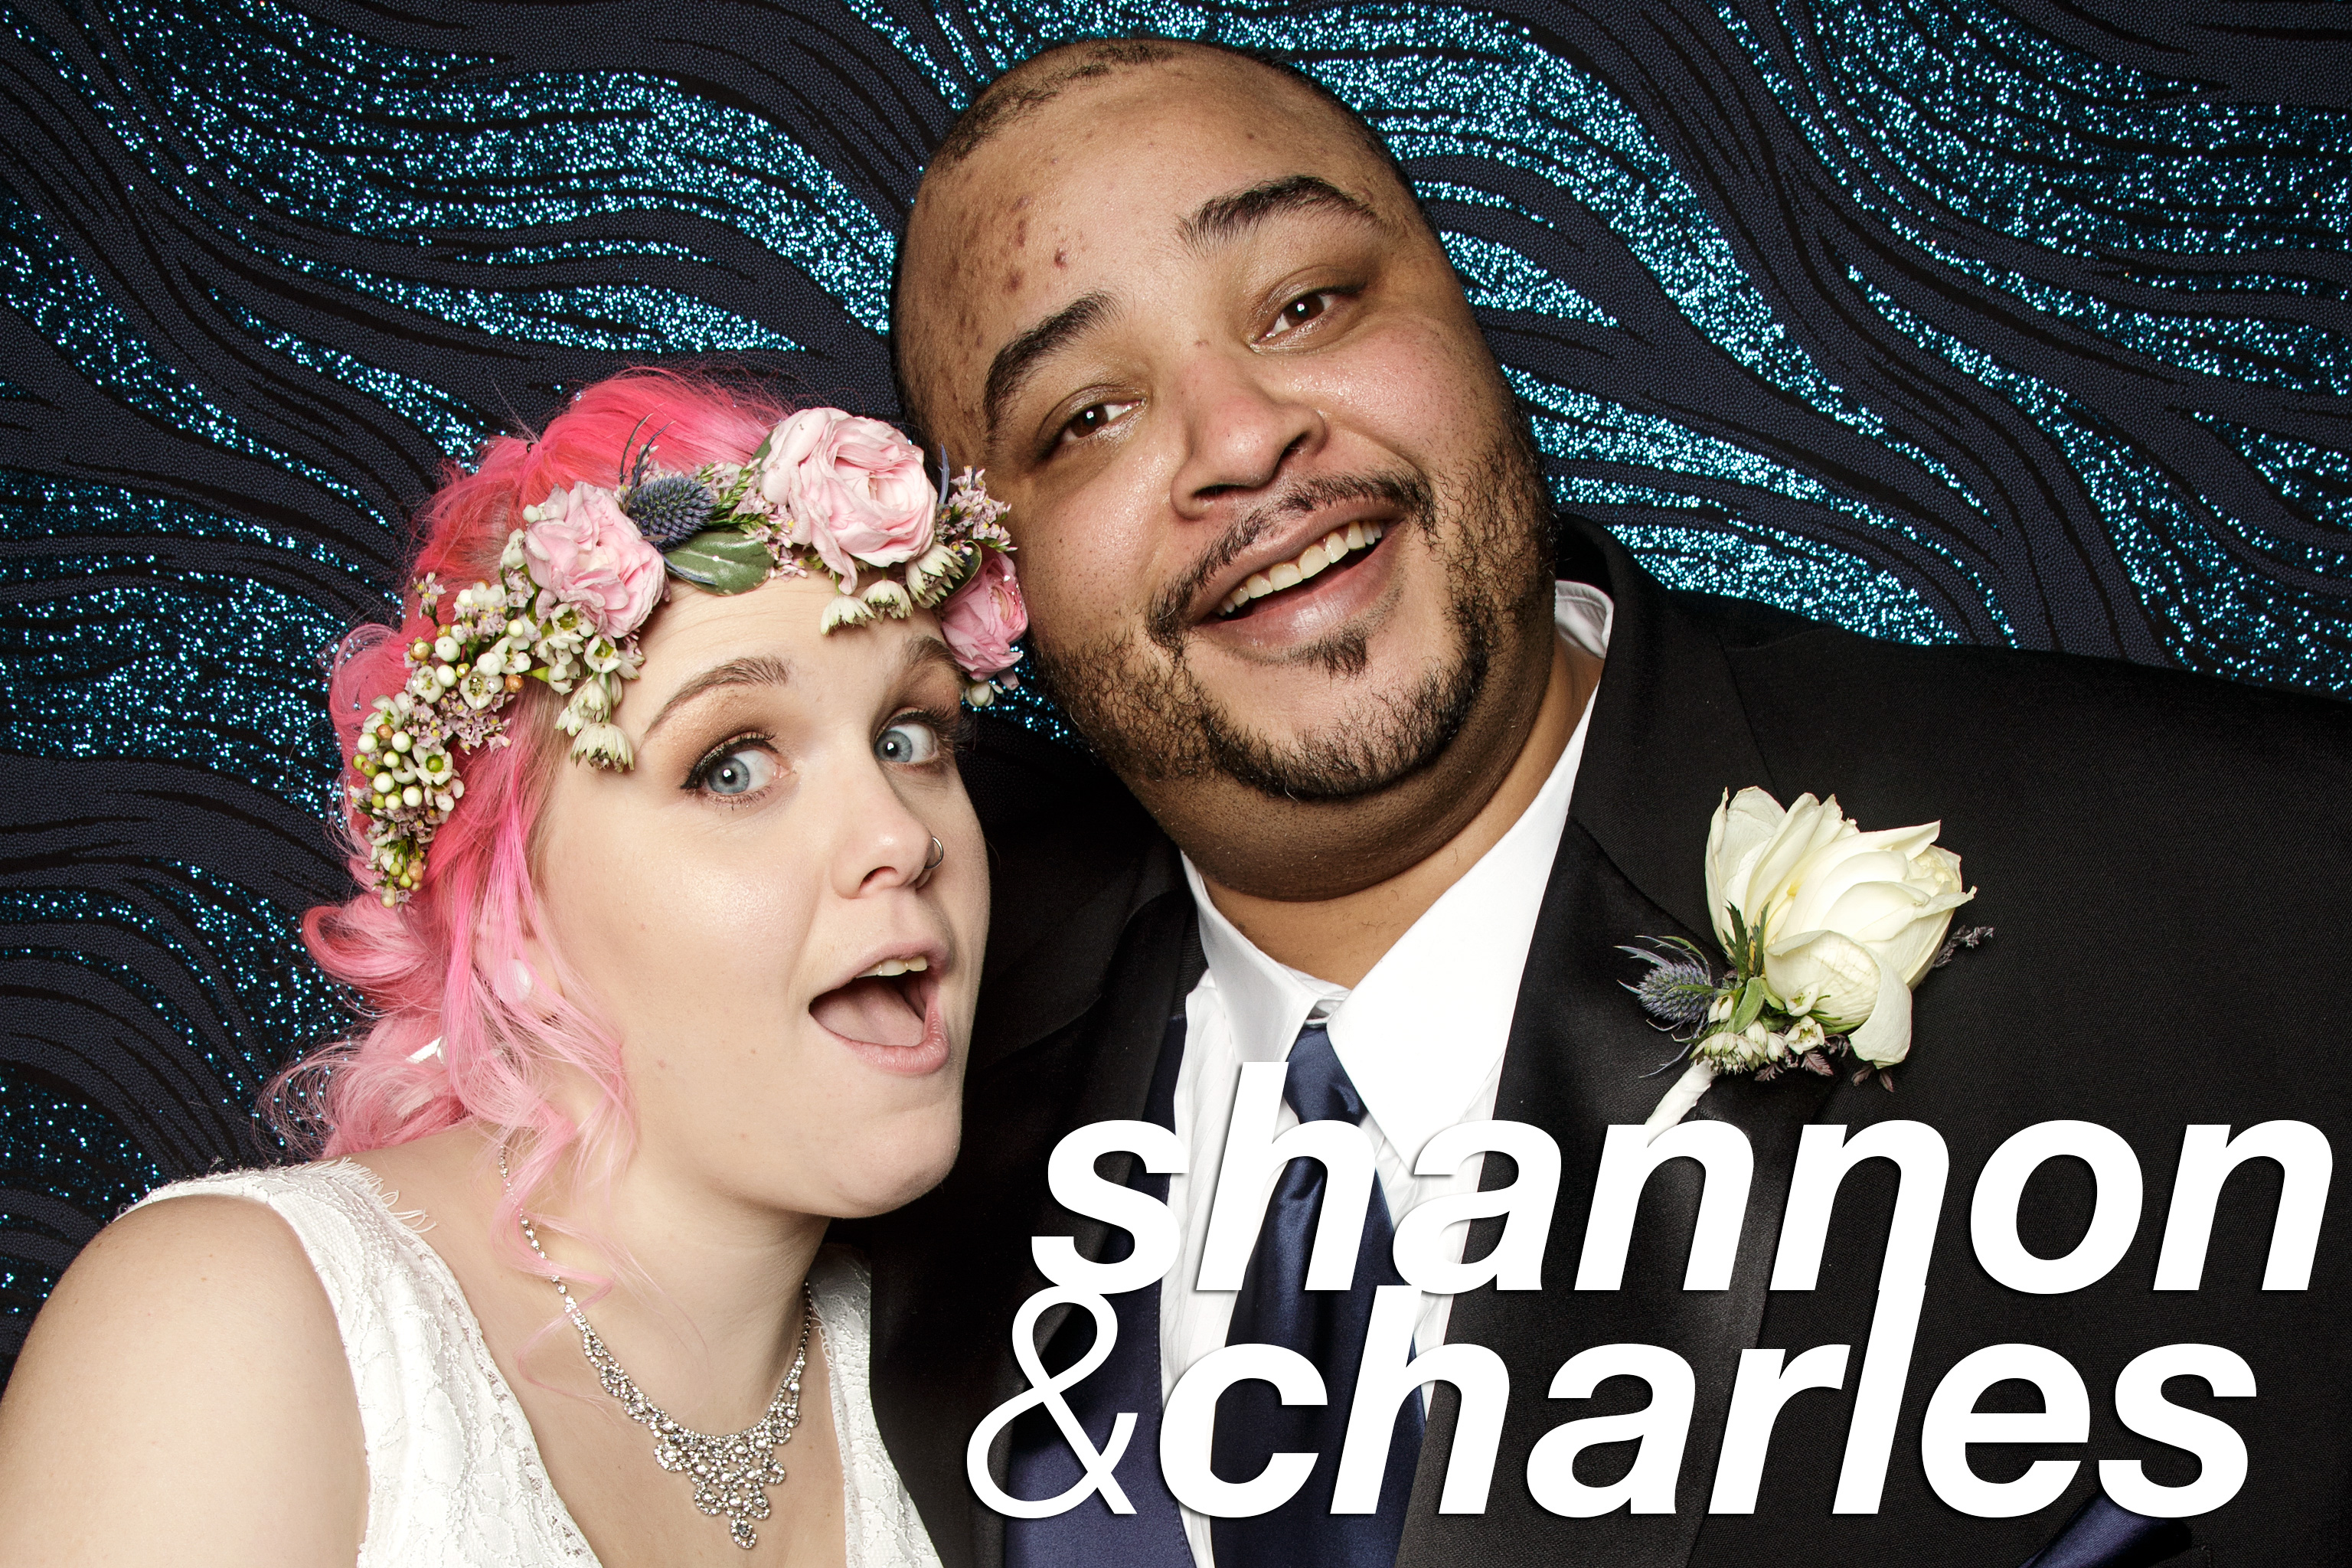 portrait booth photos from shannon and charles chicago wedding, january 2017